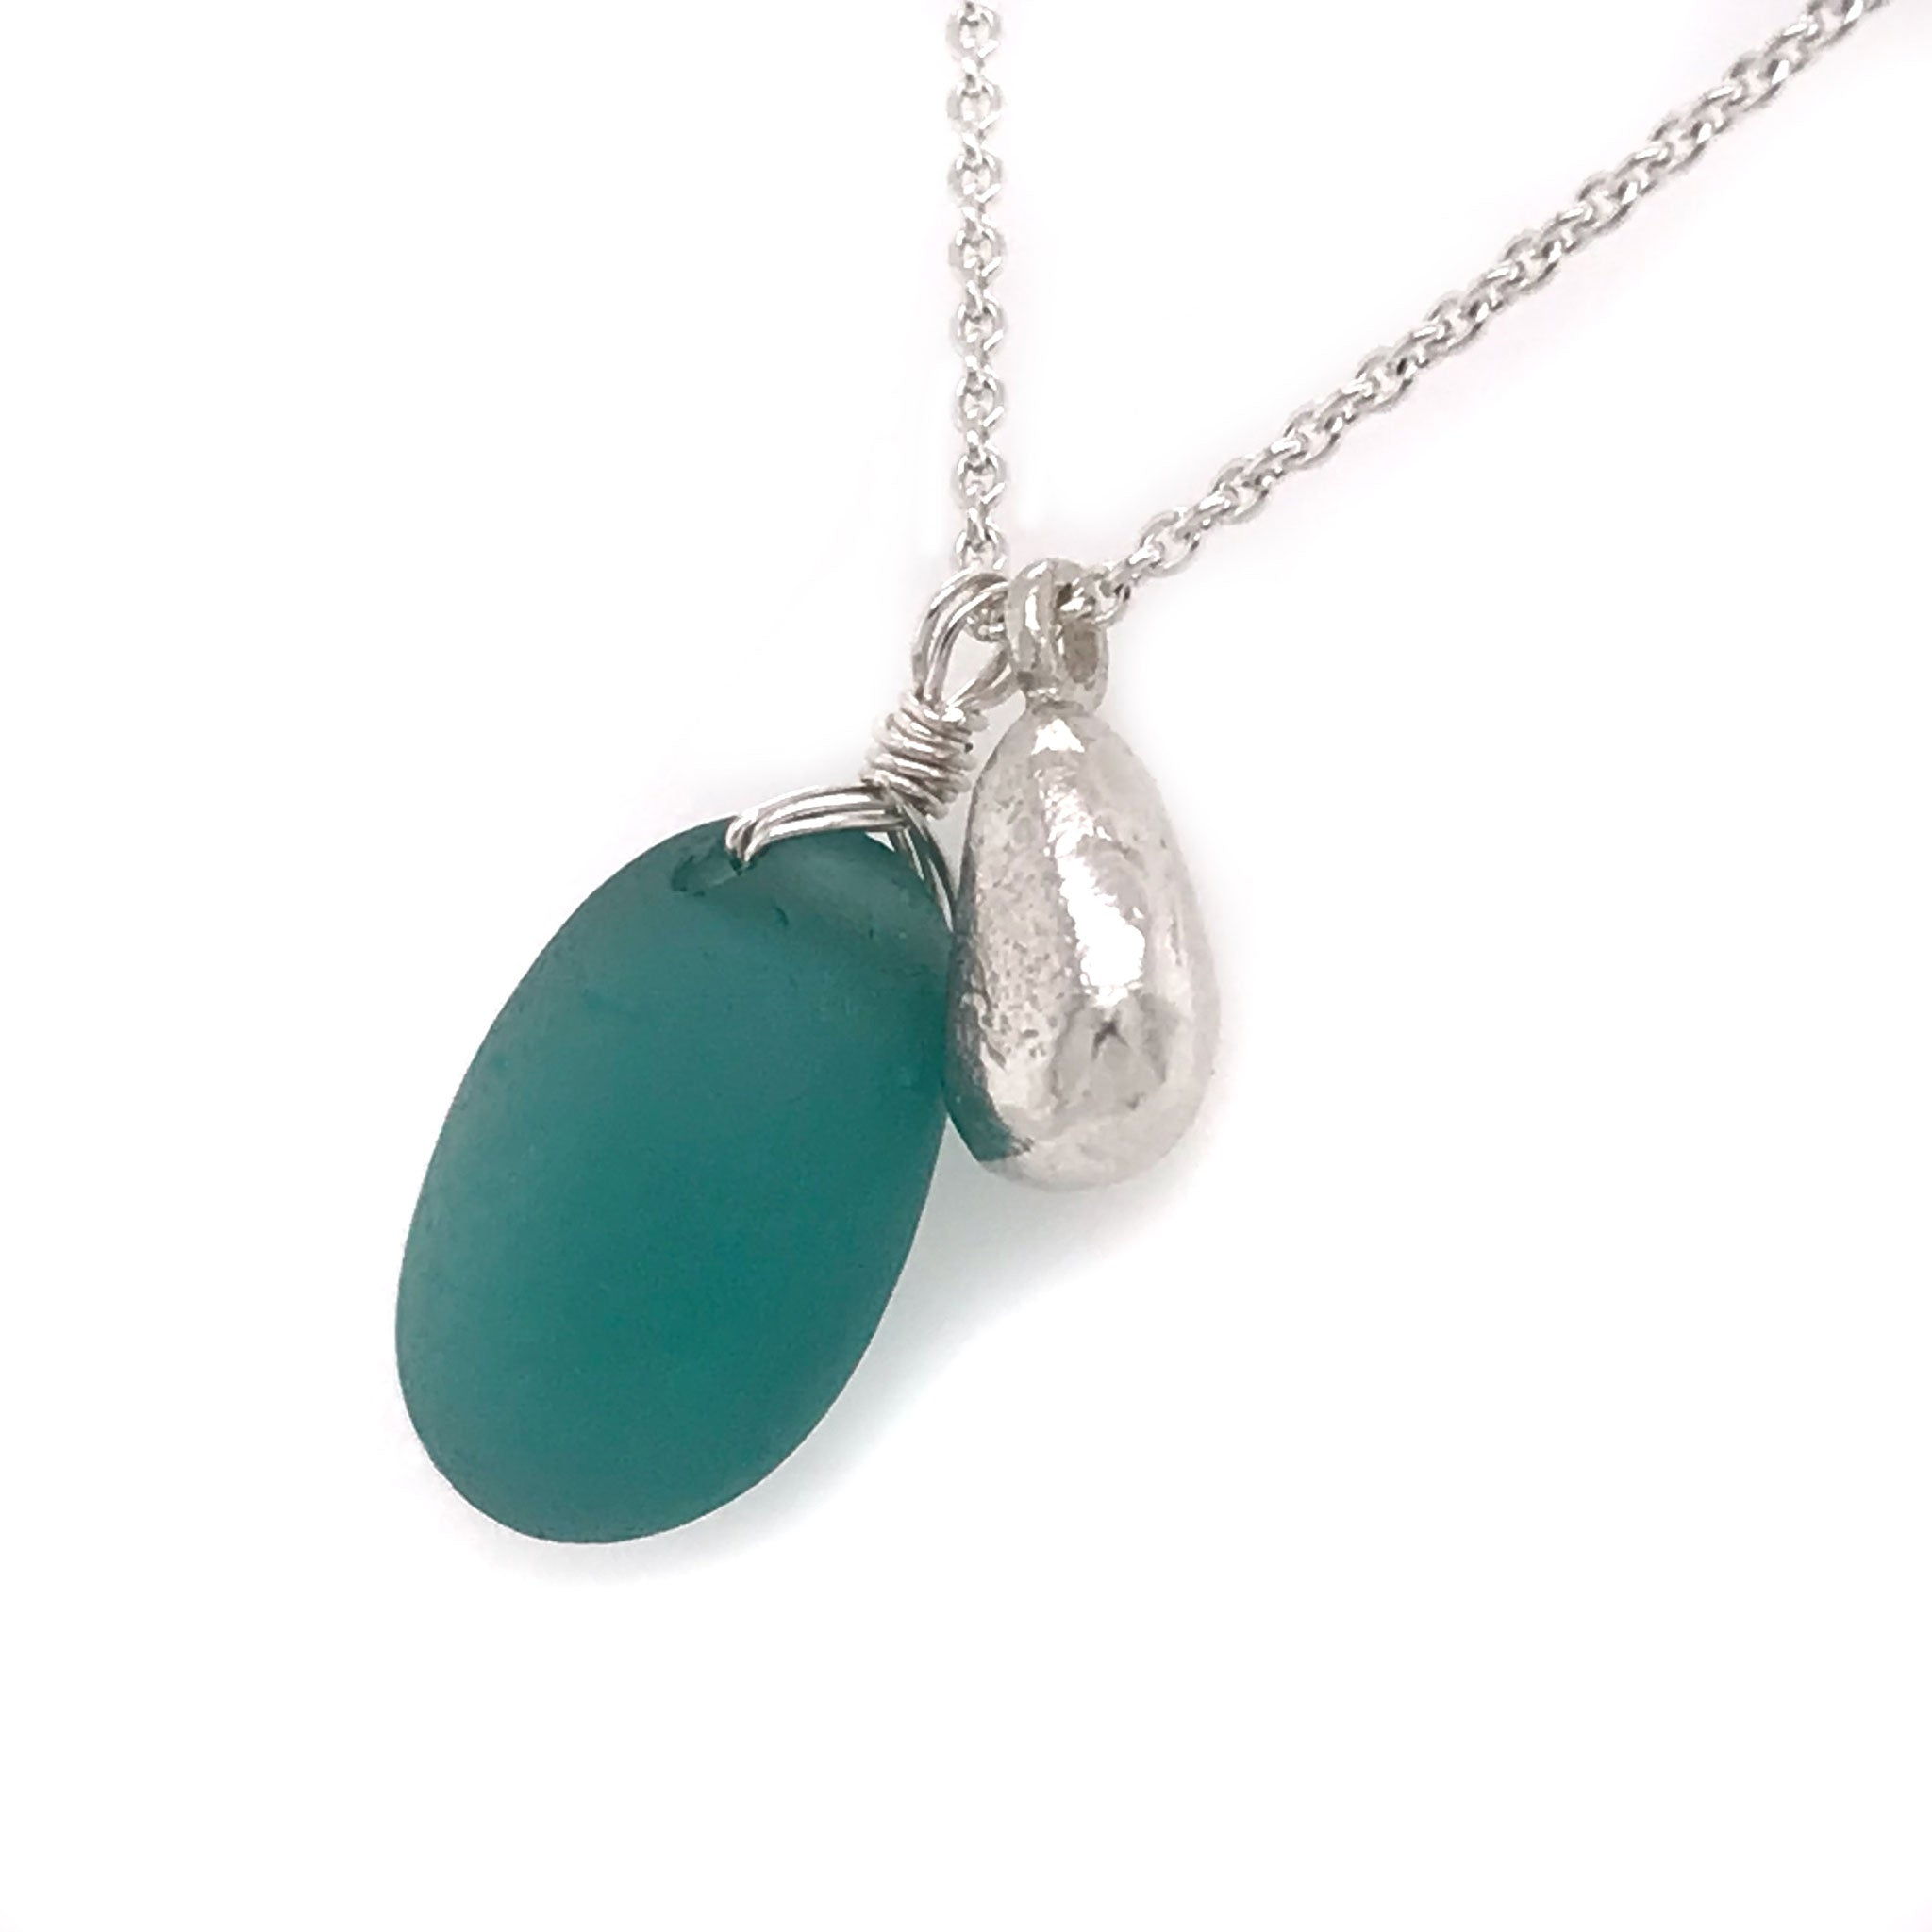 solid silver teardrop charm on silver charm with teal seaglass with solid silver teardrop charm Kriket Broadhurst jewellery made in Sydney